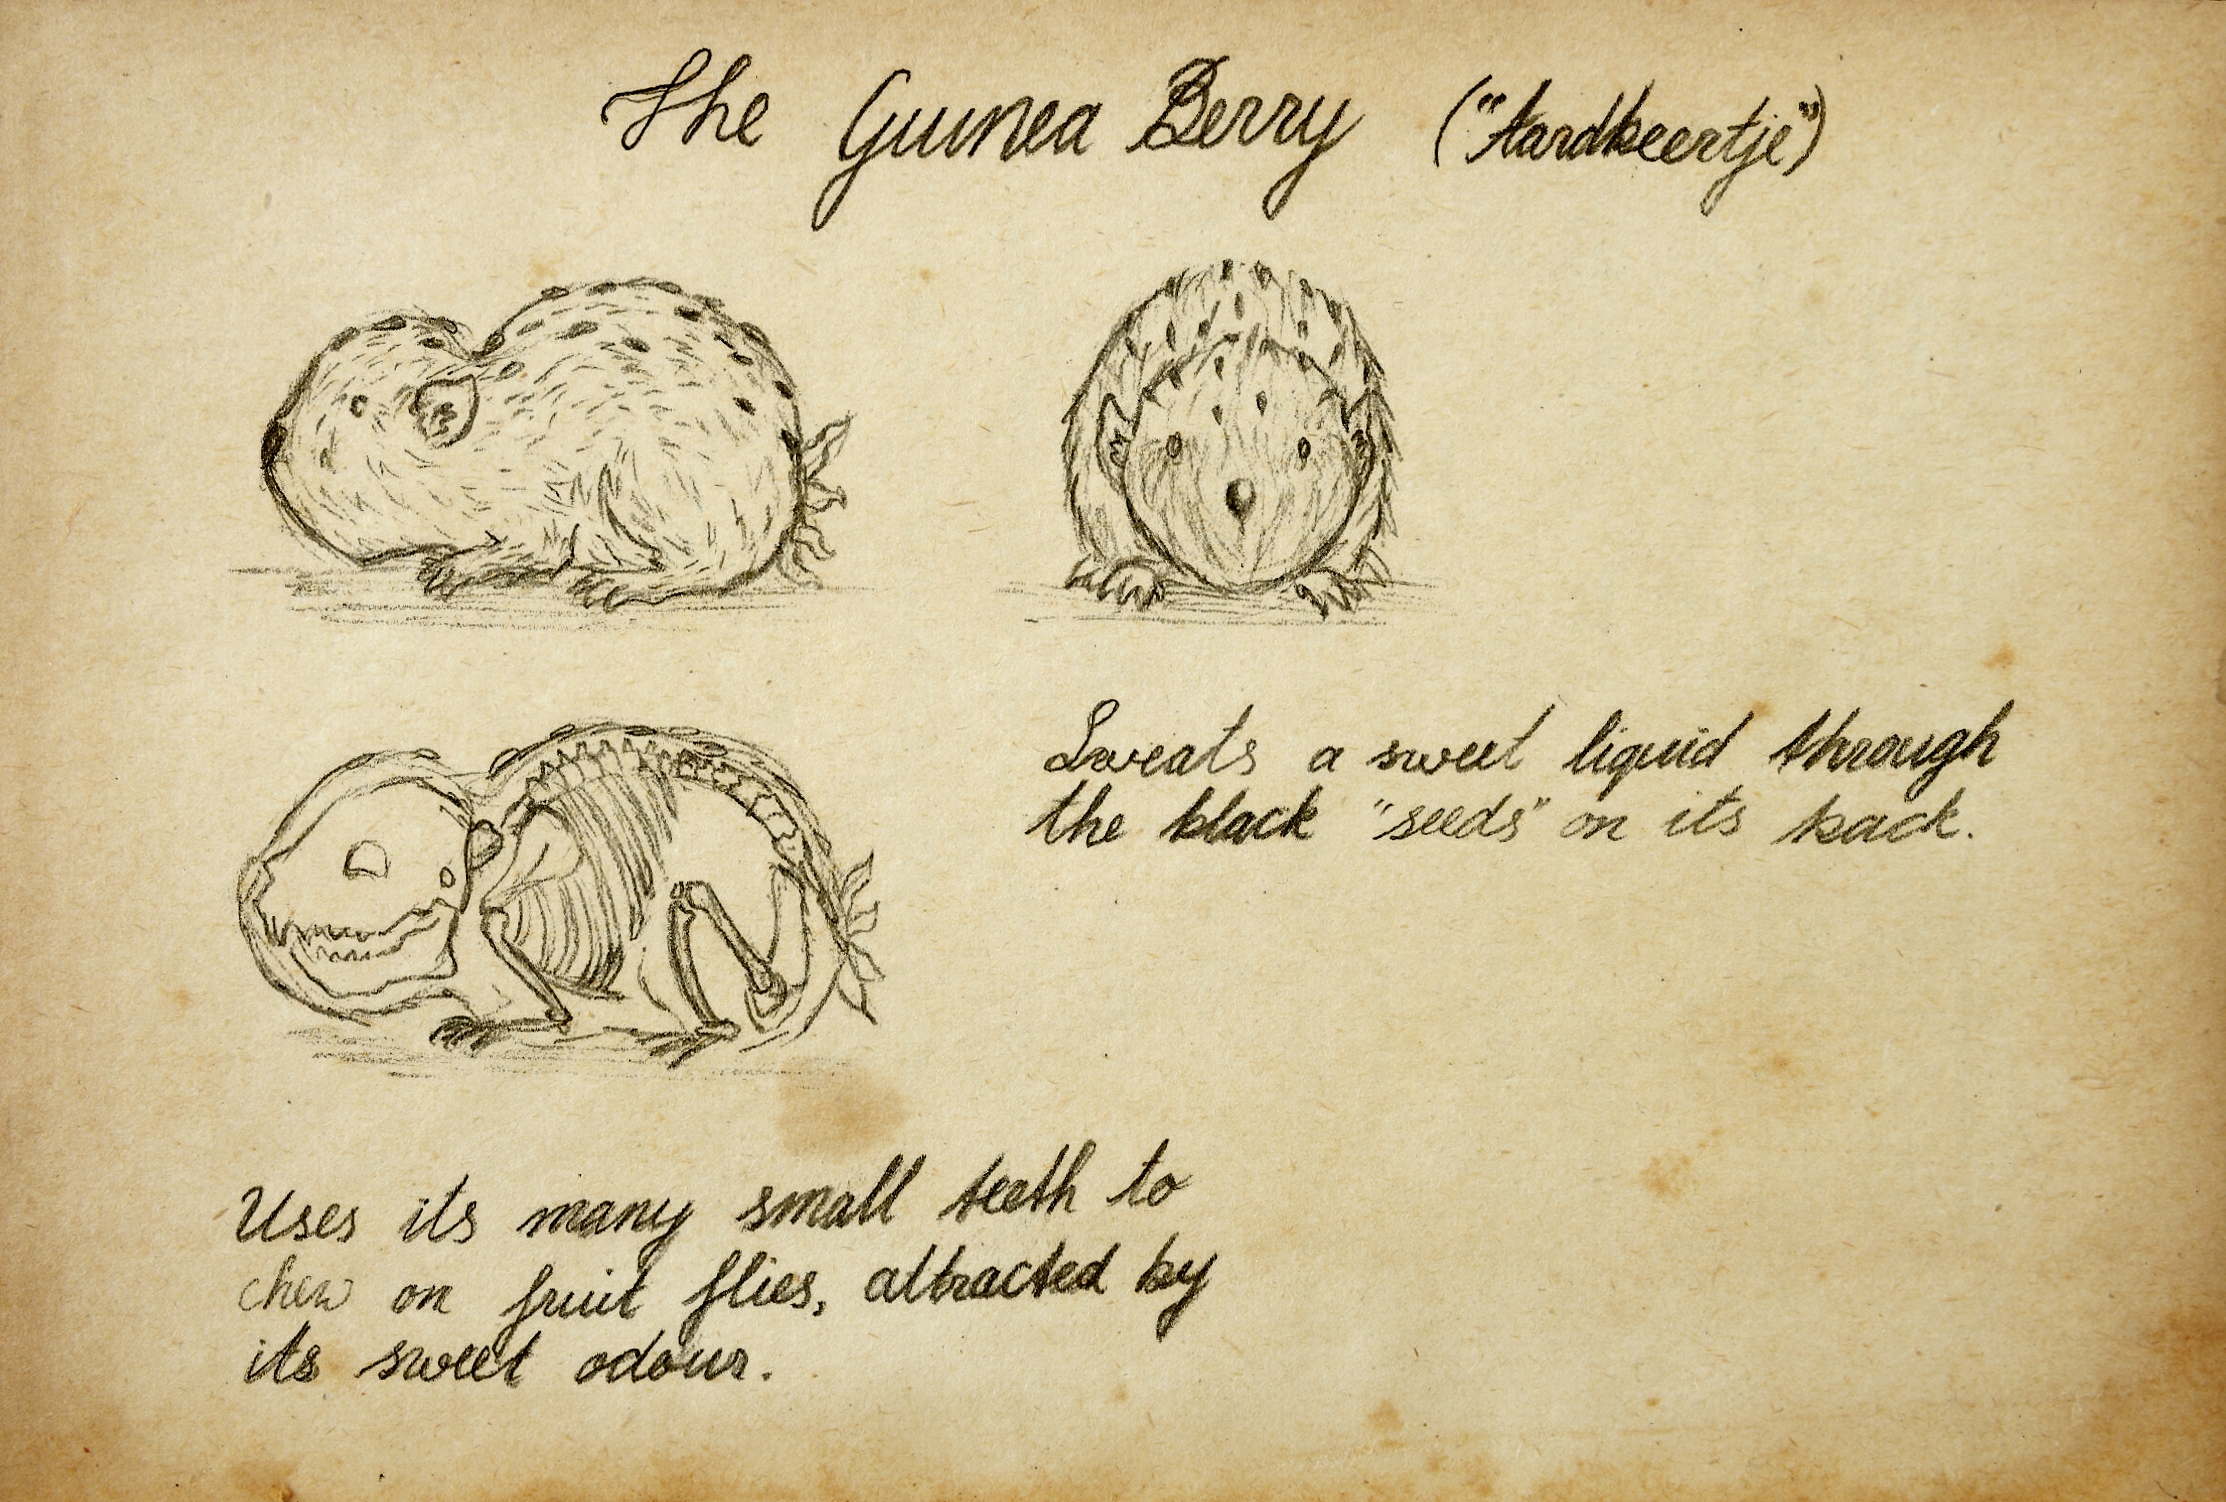 Styled character design page for the Guinea Berry / Aardbeertje creature.